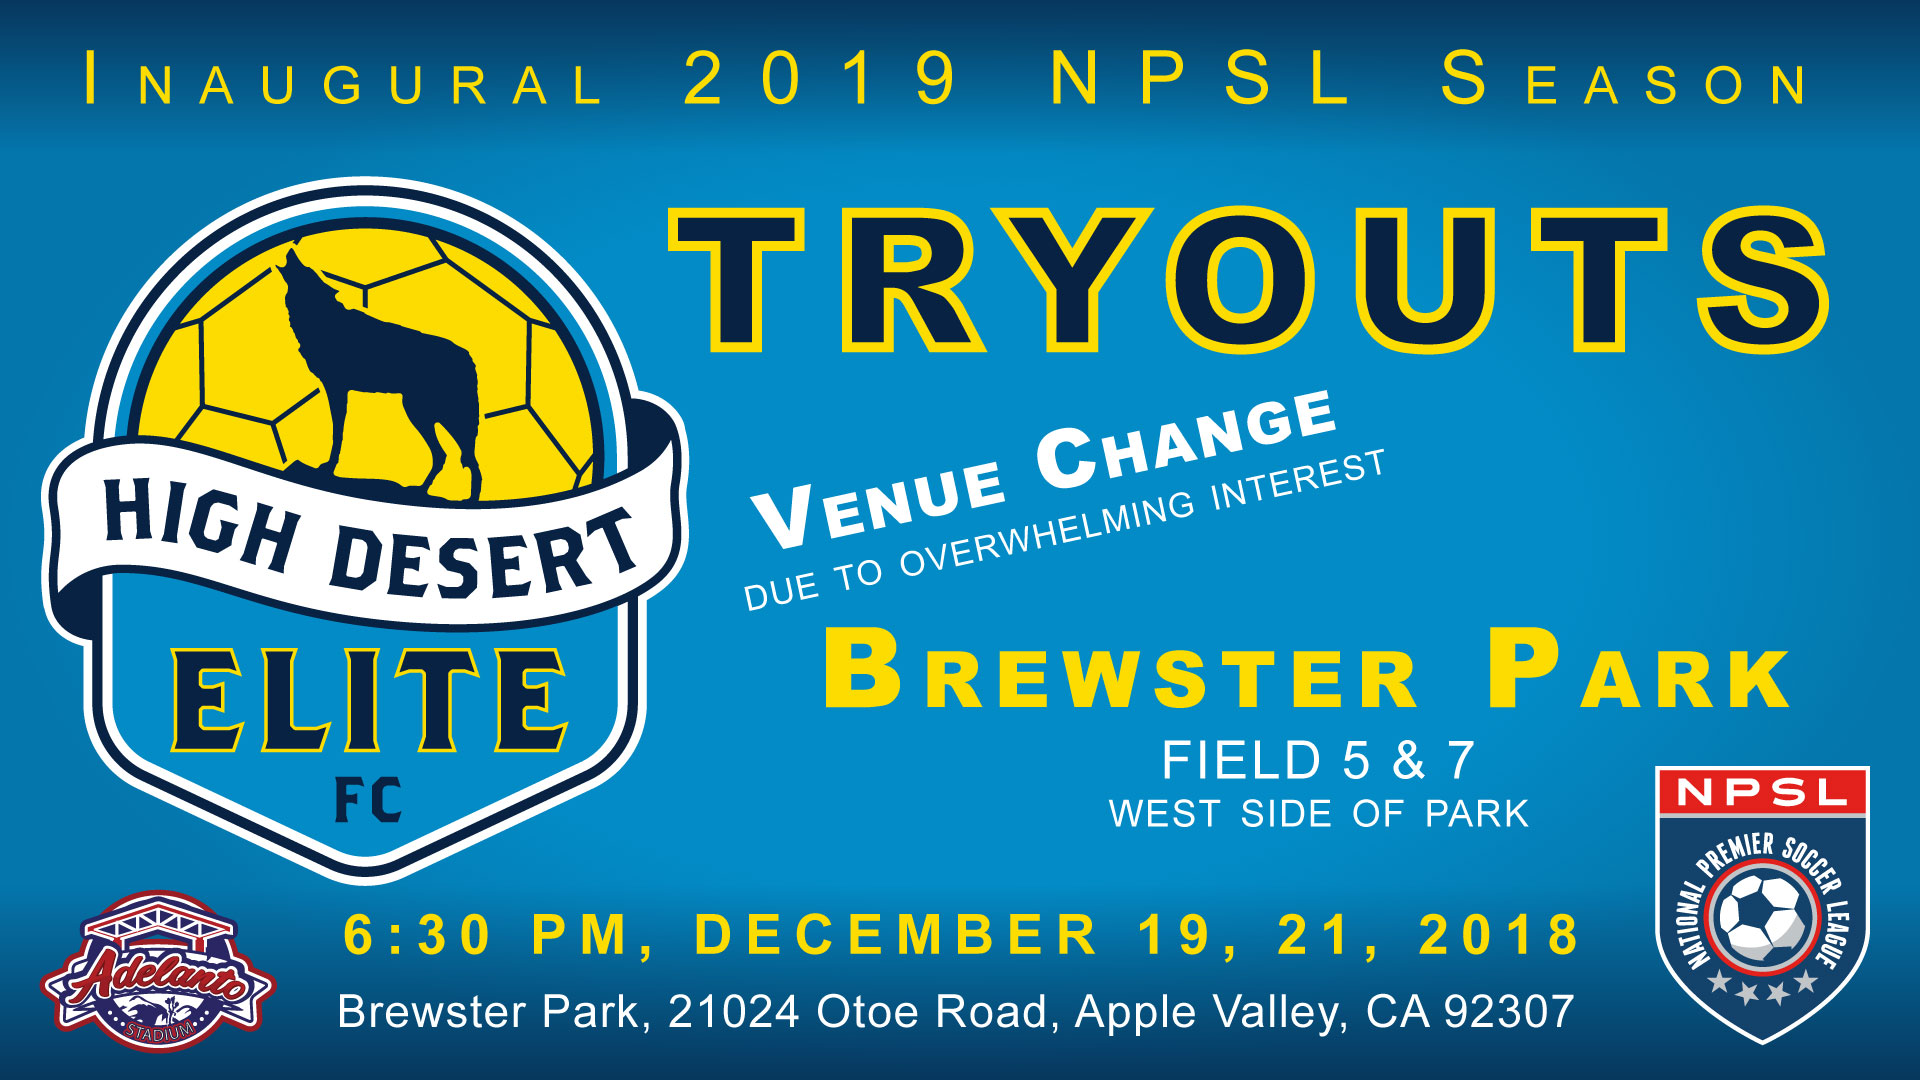 2019 NPSL Tryout Venue Changed Due To Overwhelming Player Response